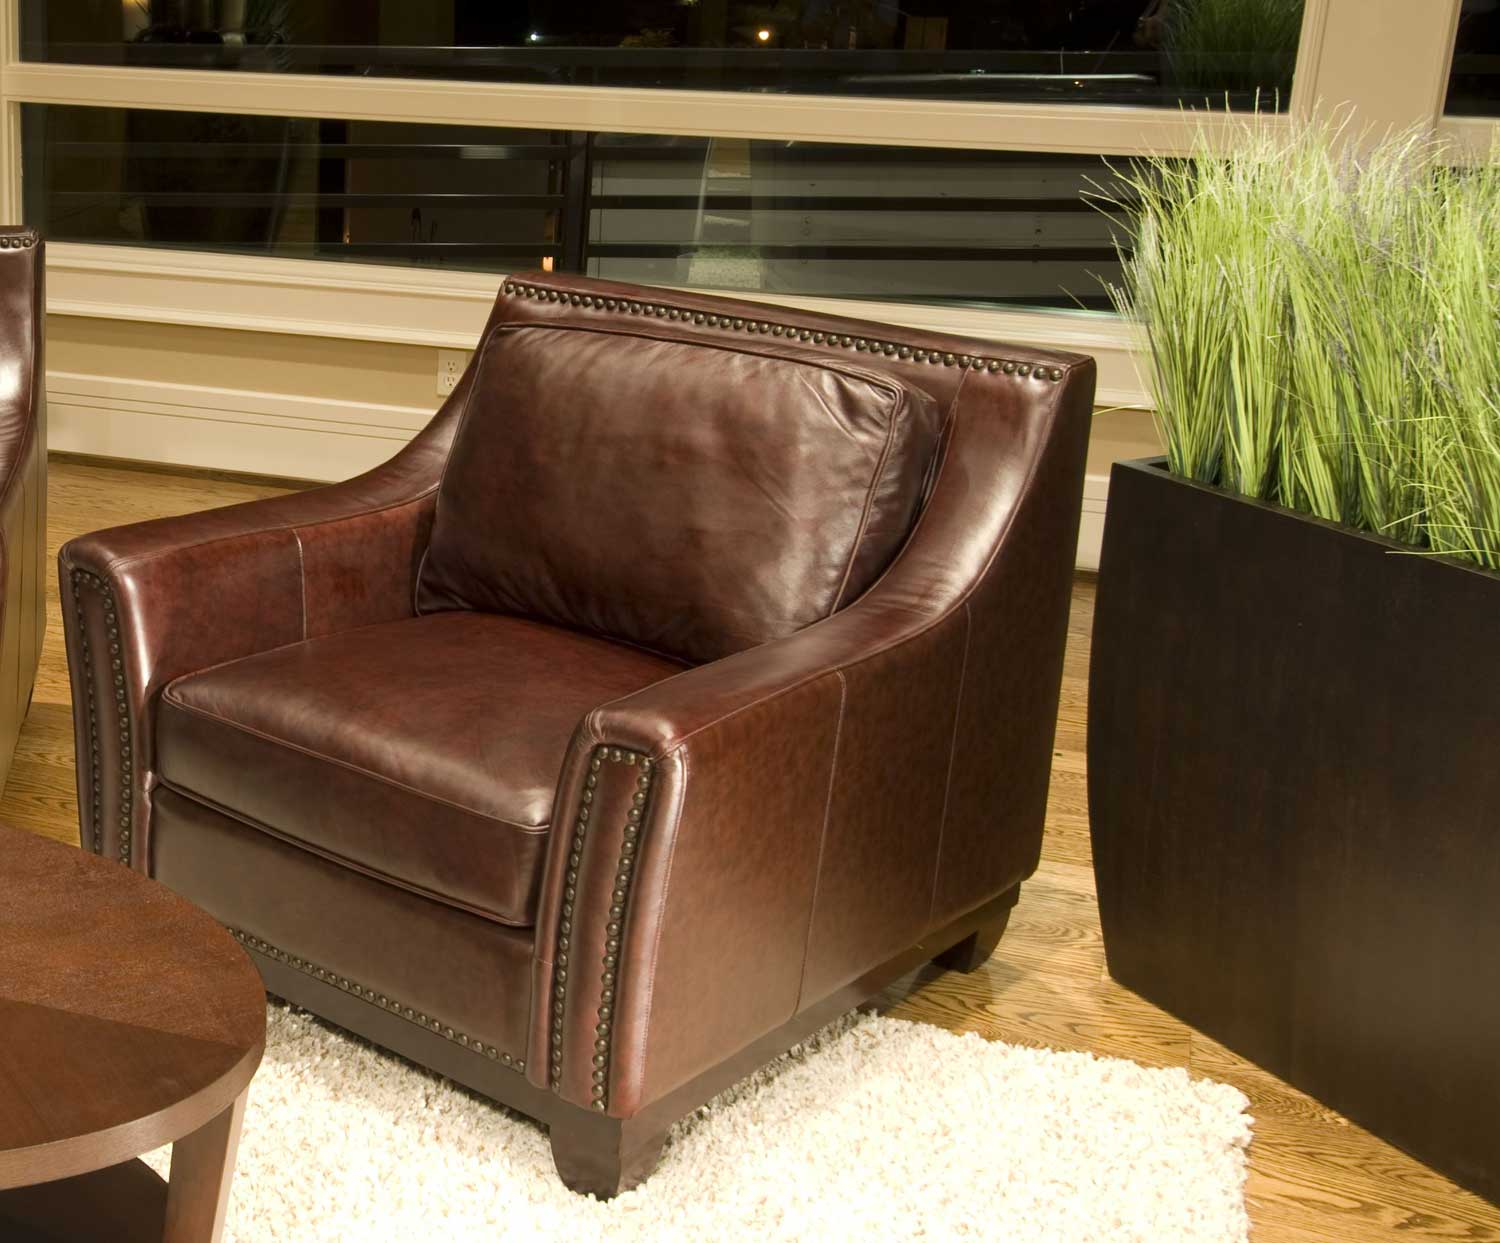 ELEMENTS Fine Home Furnishings Serafina Top Grain Leather Accent Chair - Clove